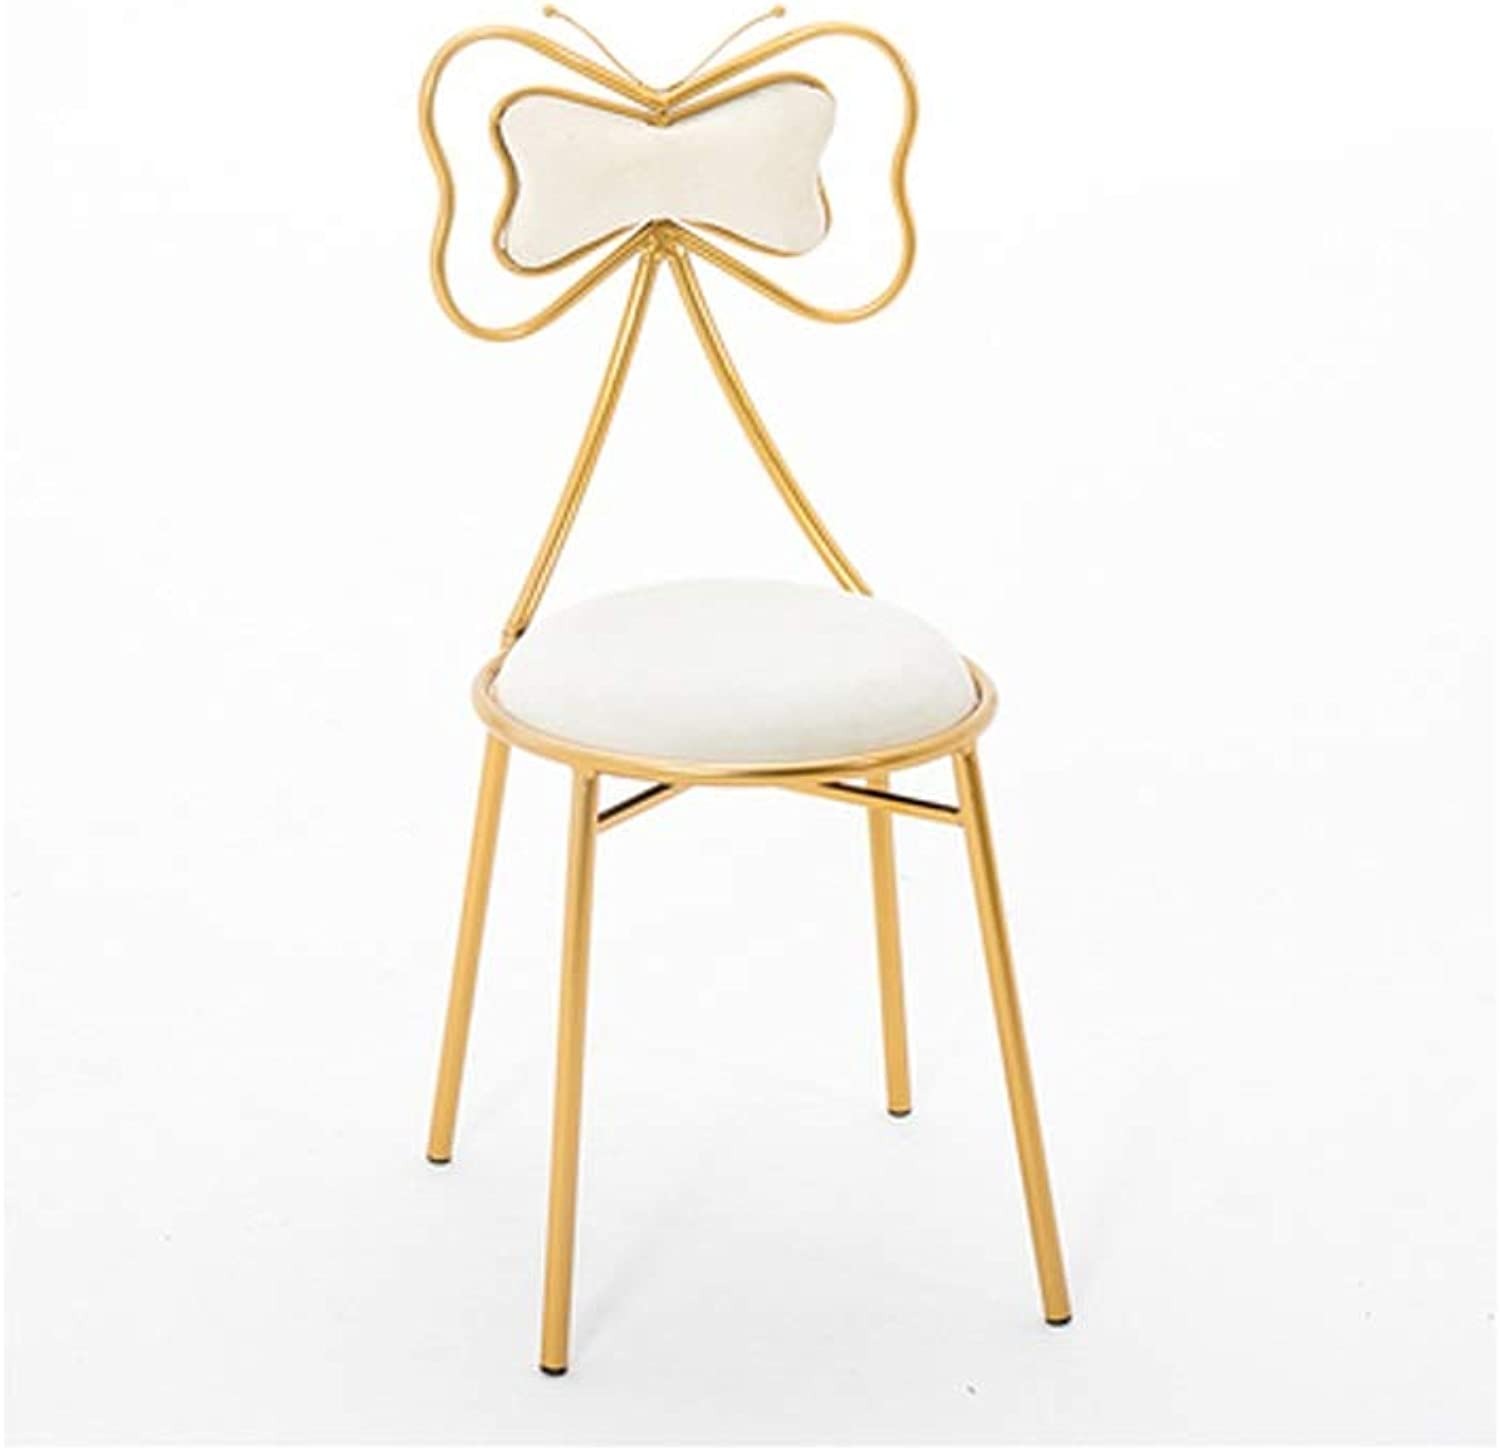 YJWOZ Home Restaurant Bedroom Multi-Function Metal Chair Sponge Back High Rebound Seat Chair 7 color Optional Sitting Height 45CM Chair (color   A)